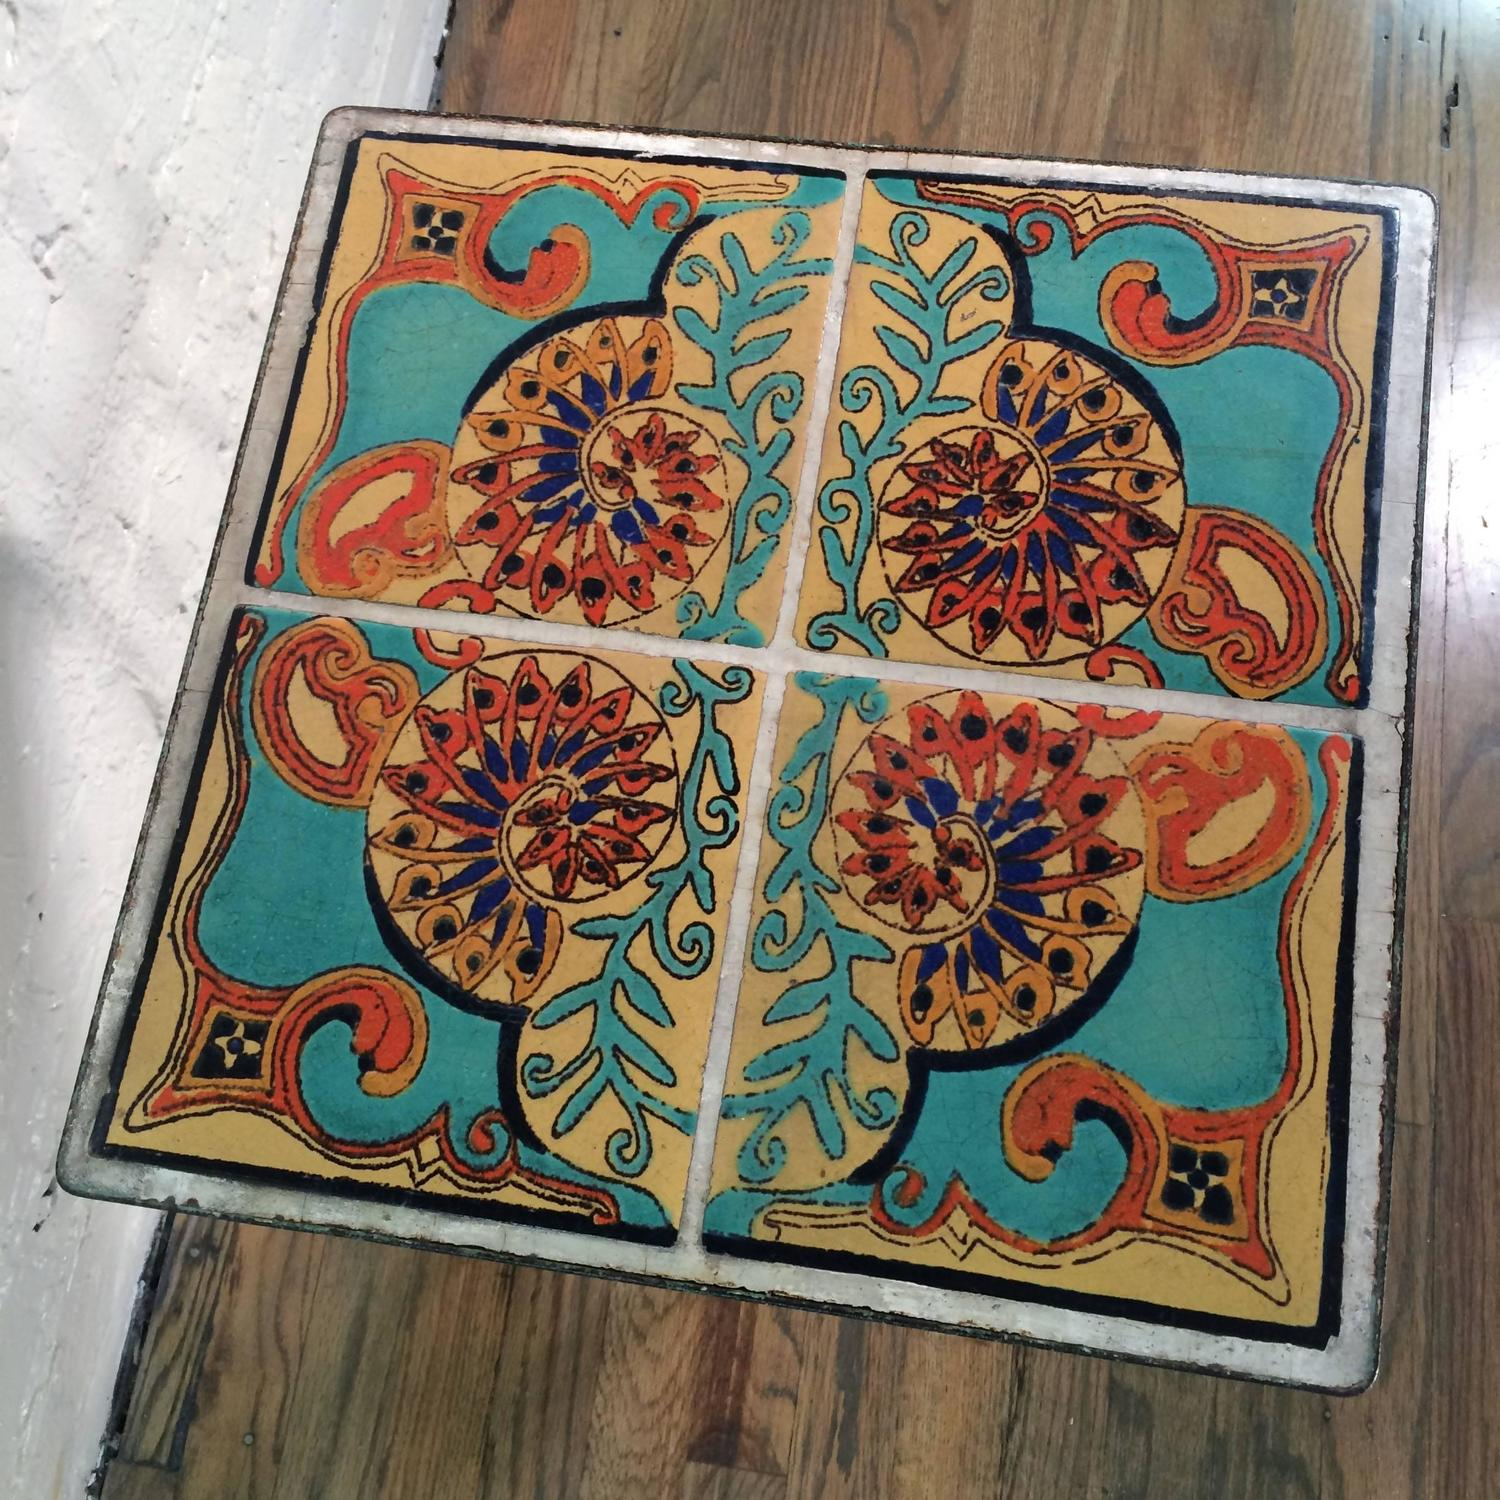 Arts and crafts ceramic tile table for sale at 1stdibs for Ceramic tiles for crafts projects